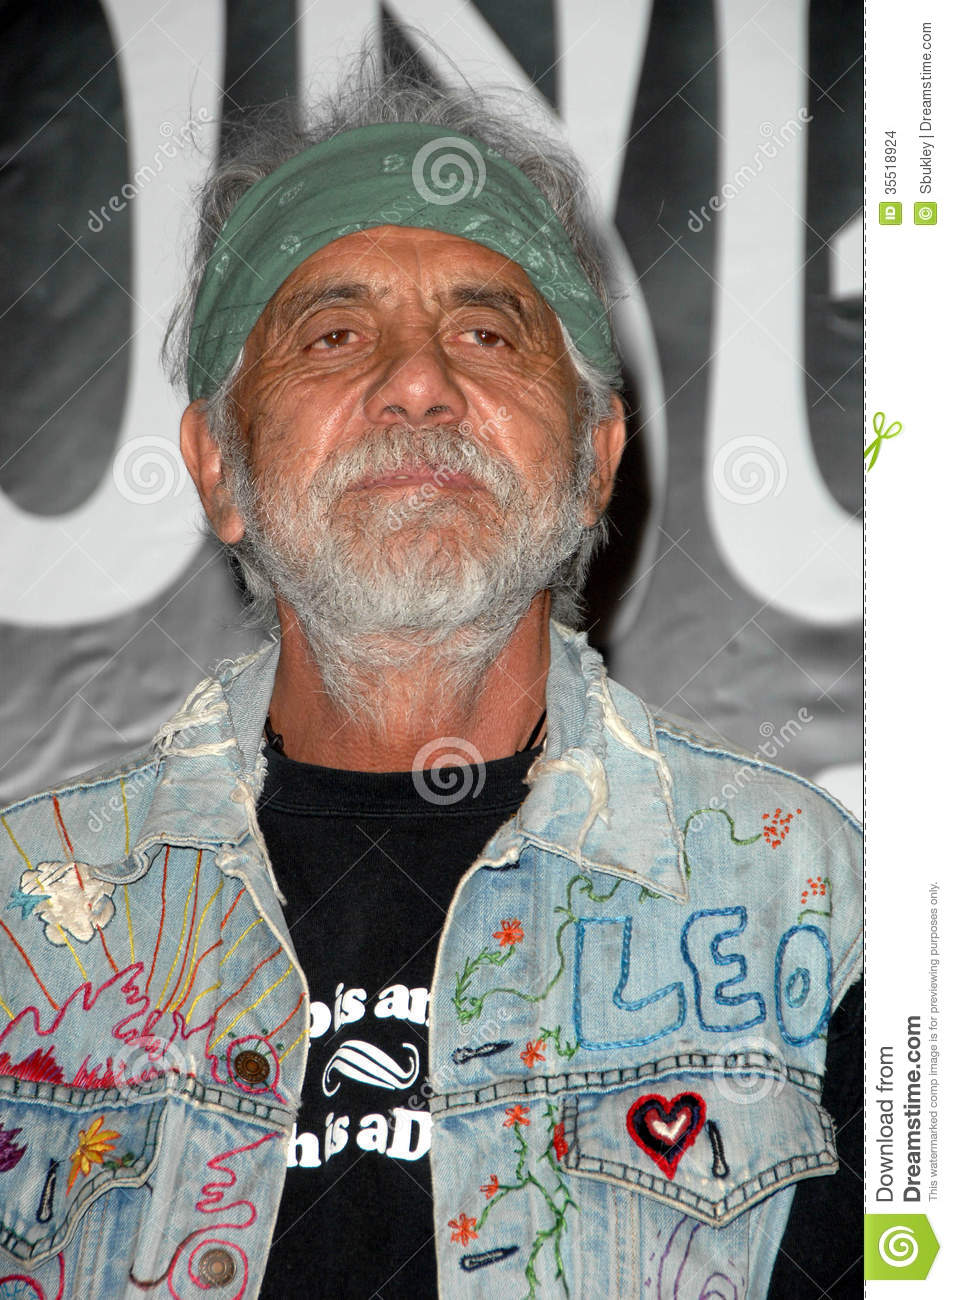 tommy chong группаtommy chong алматы, tommy chong band, tommy chong band алматы, tommy chong up in smoke, tommy chong vape, tommy chong zootopia, tommy chong blue scholars, tommy chong roast, tommy chong mask, tommy chong age, tommy chong interview, tommy chong movies, tommy chong snoop dogg, tommy chong ama, tommy chong группа, tommy chong instagram, tommy chong cancer